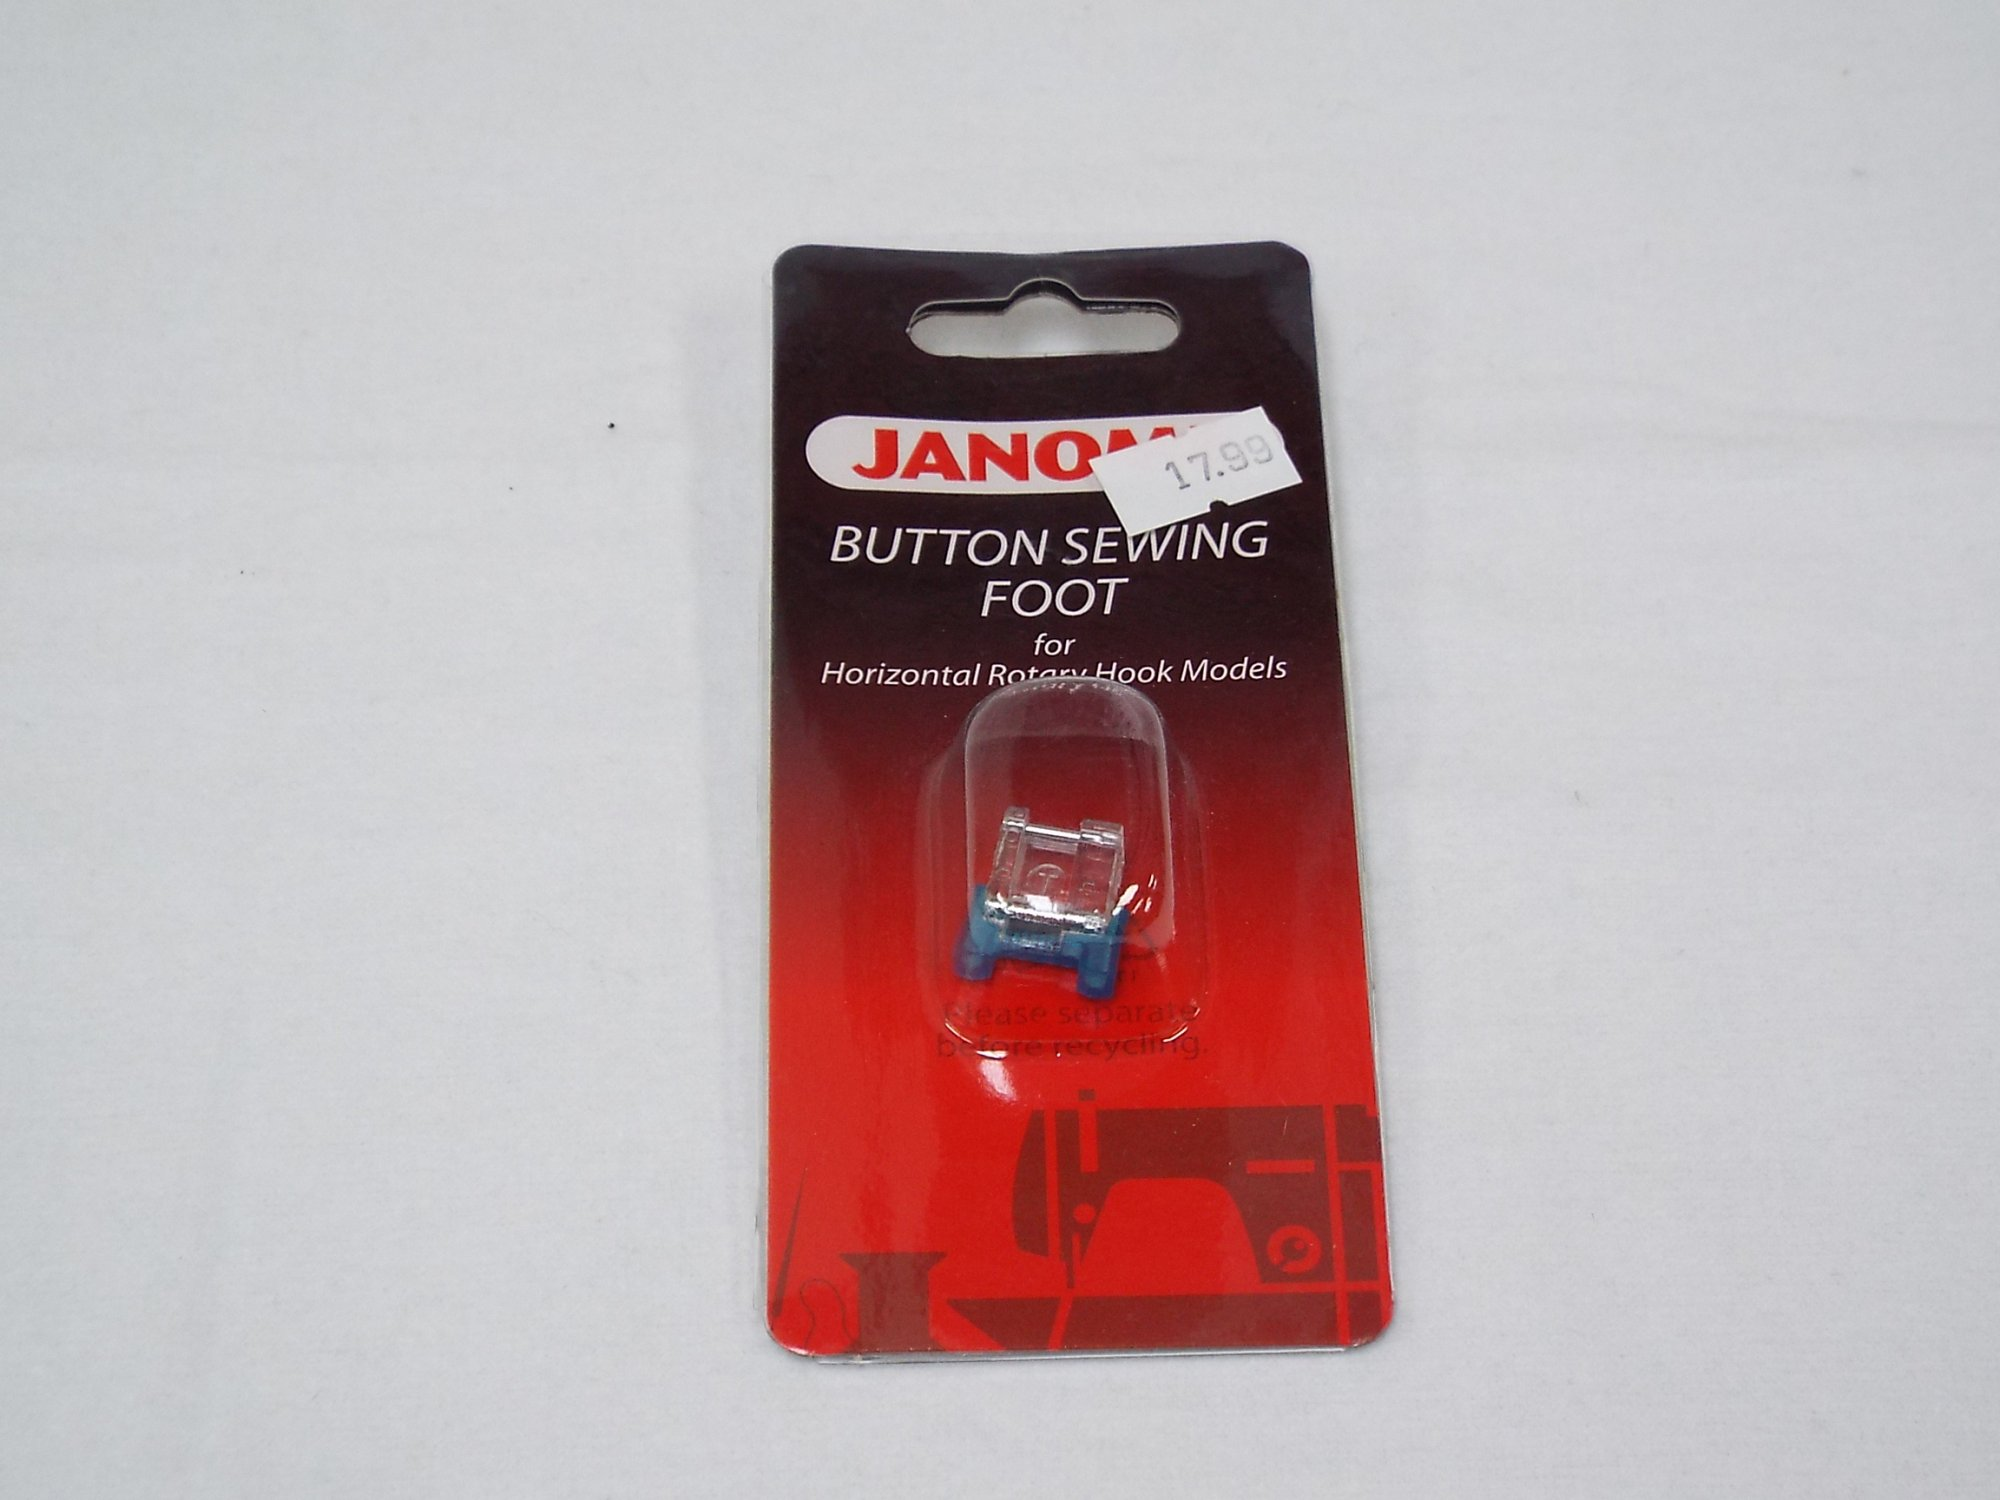 Janome 7 mm Button Sewing Foot